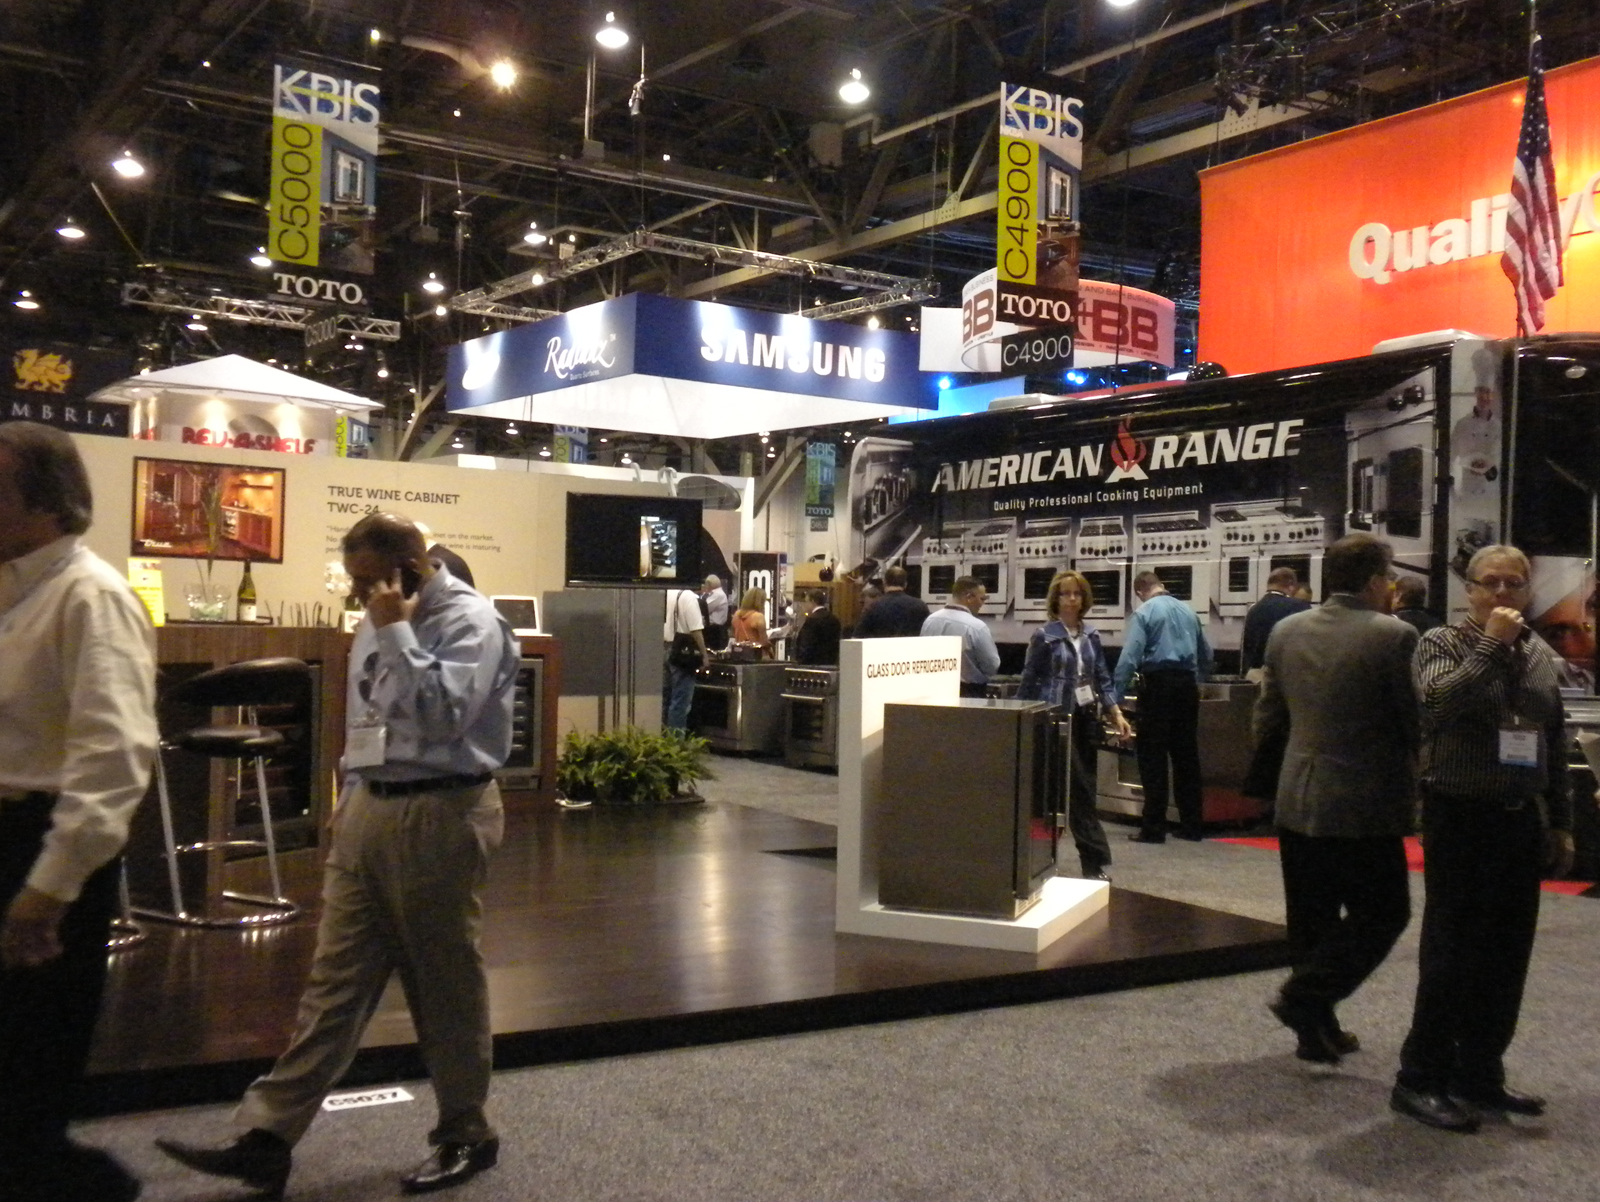 "The show floor was bustling with exhibitors and attendees. While many trucked in elaborate booths and display, <a href=""http://www.americanrange.com/"">American Range</a> drove its traveling showroom bus right onto the floor and invited people aboard to vi"